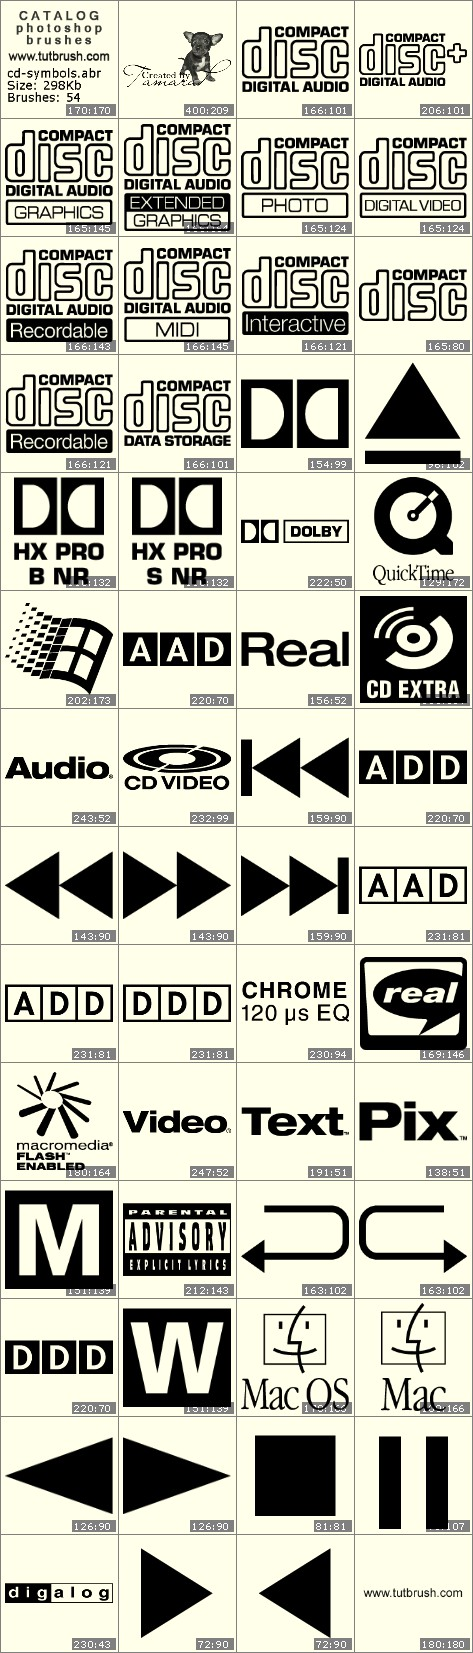 Photoshop brushes Signs on CD ROM